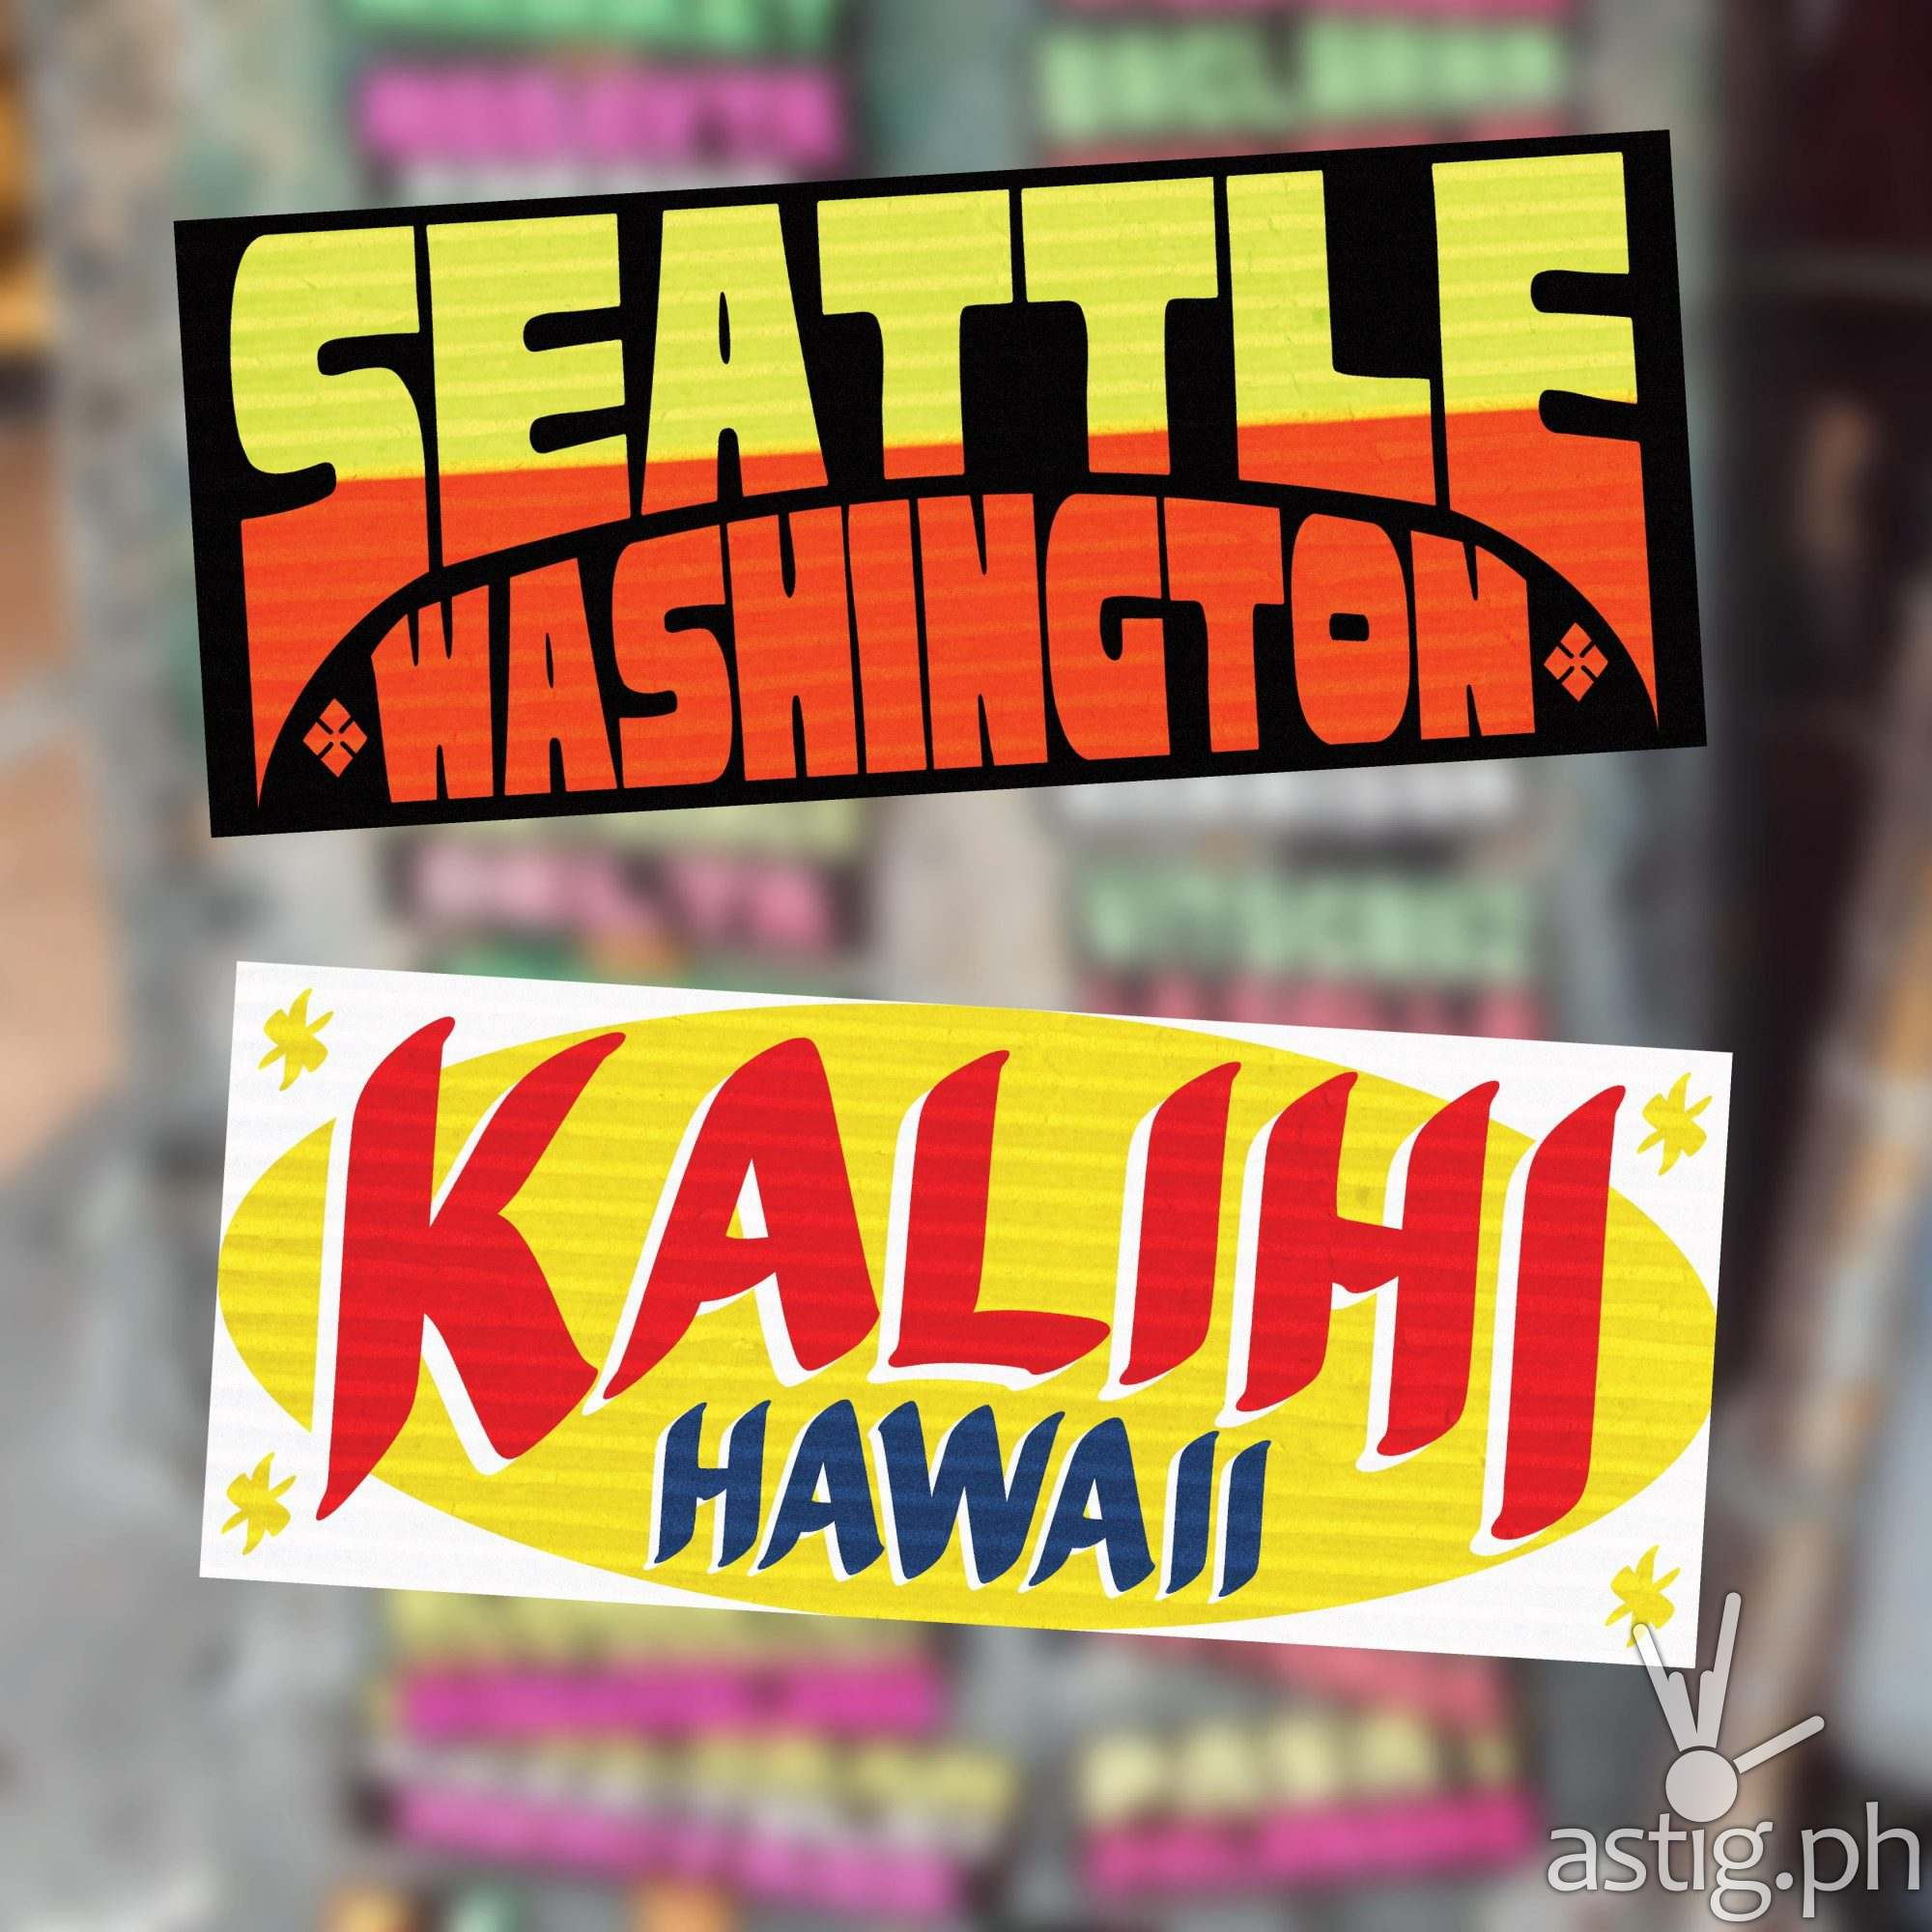 Seattle, Washington, Kalihi, Hawaii - US cities as jeepney signs from the Philippines by Zach Reyes